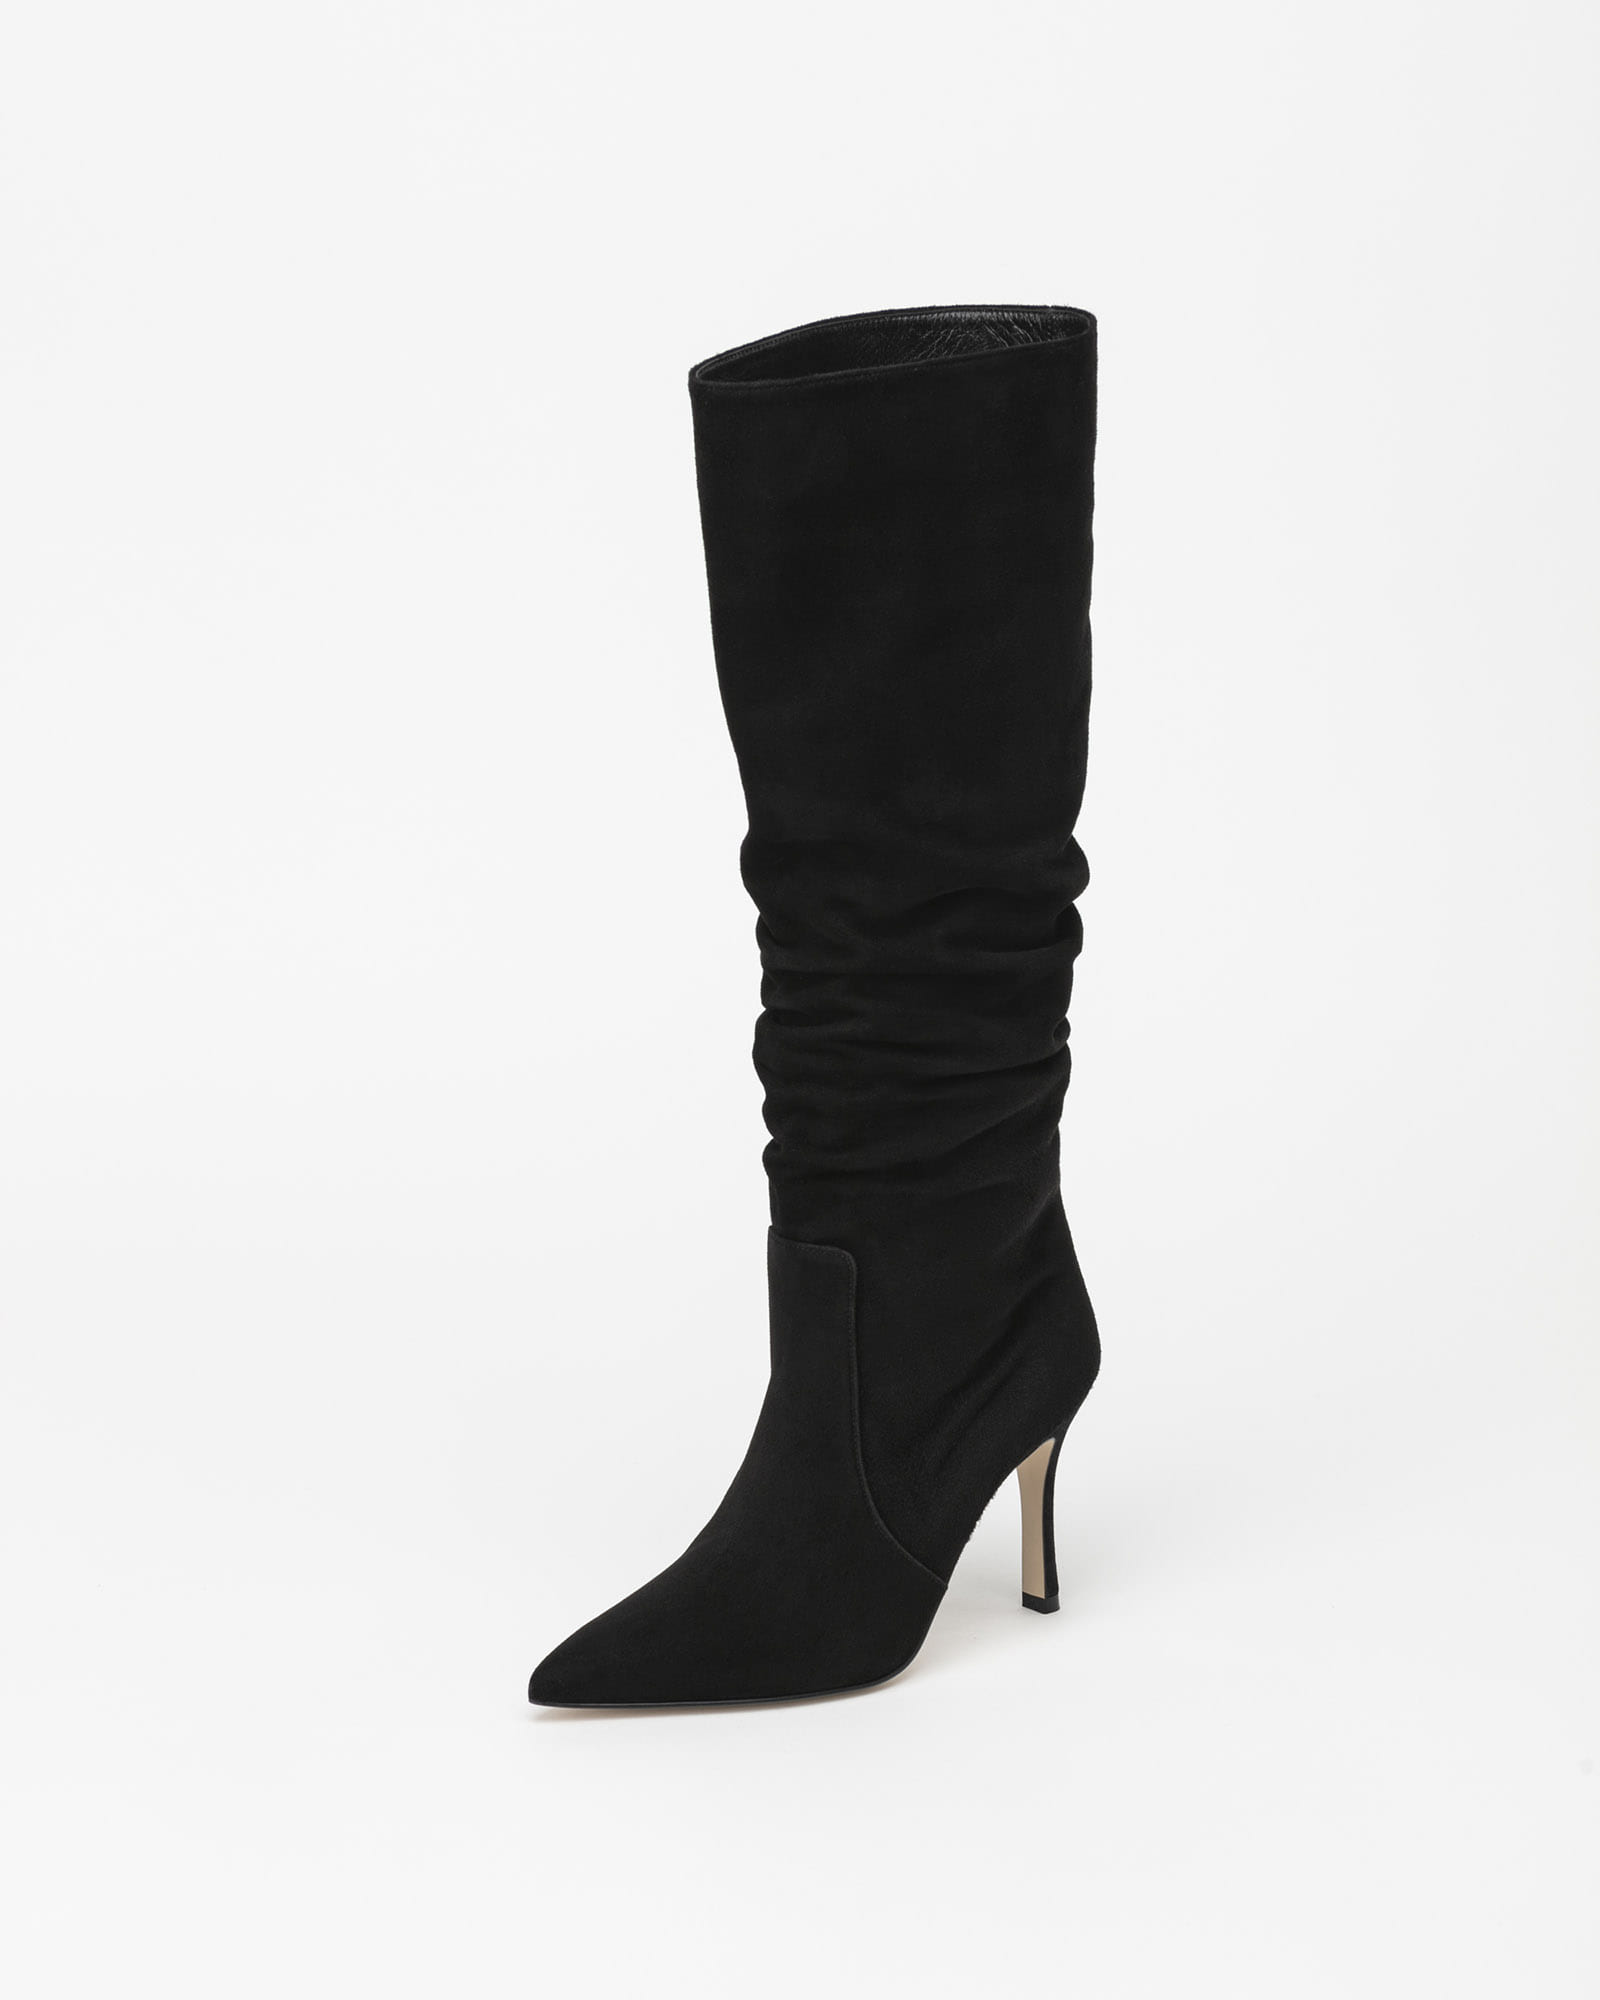 Arine Shirring Boots in Black Suede